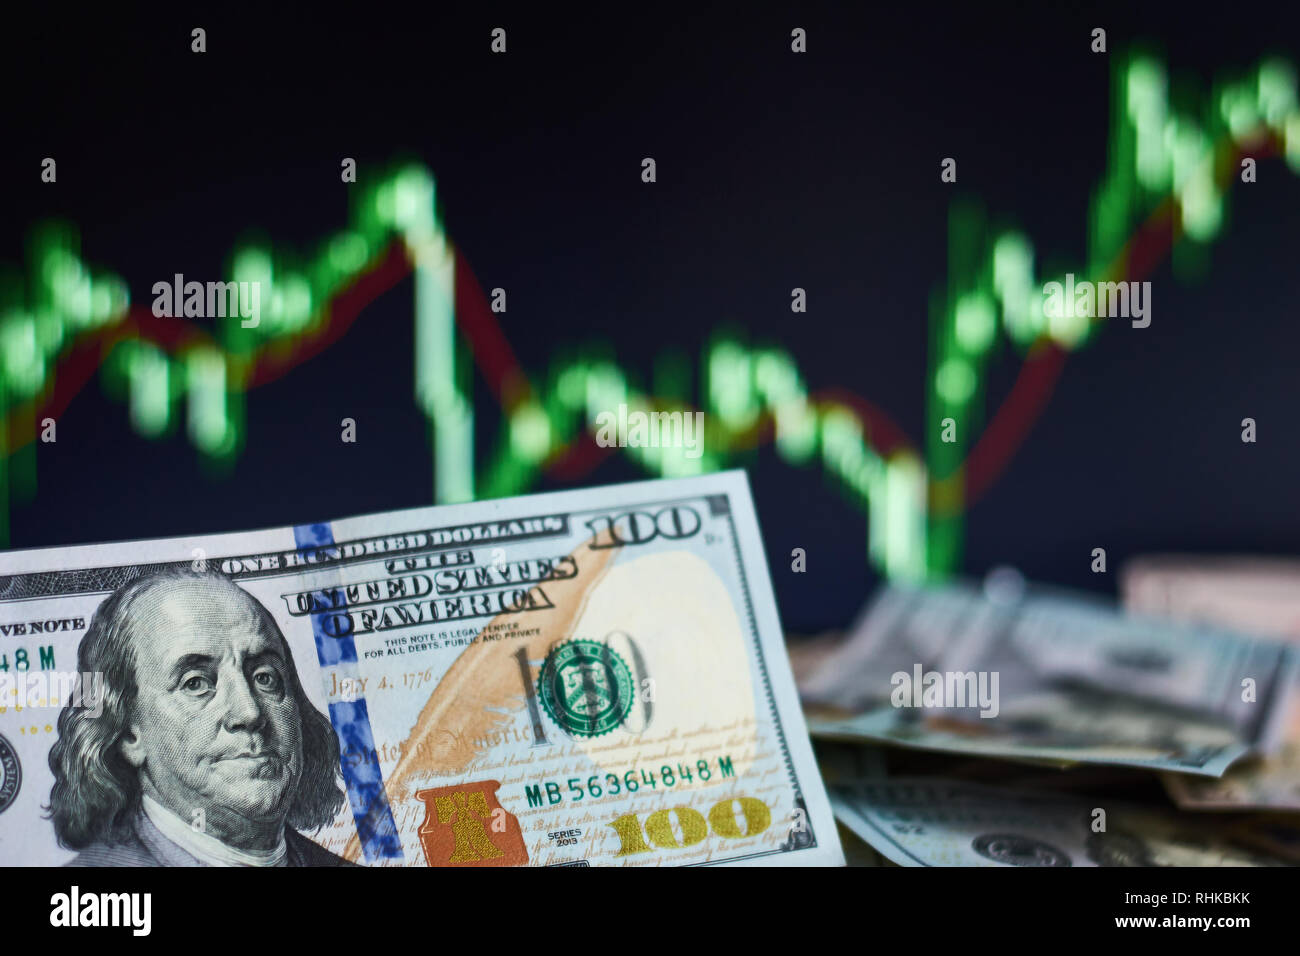 Dollar banknotes against stock market or forex trading graph and candlestick chart. Economy trends concept - Stock Image